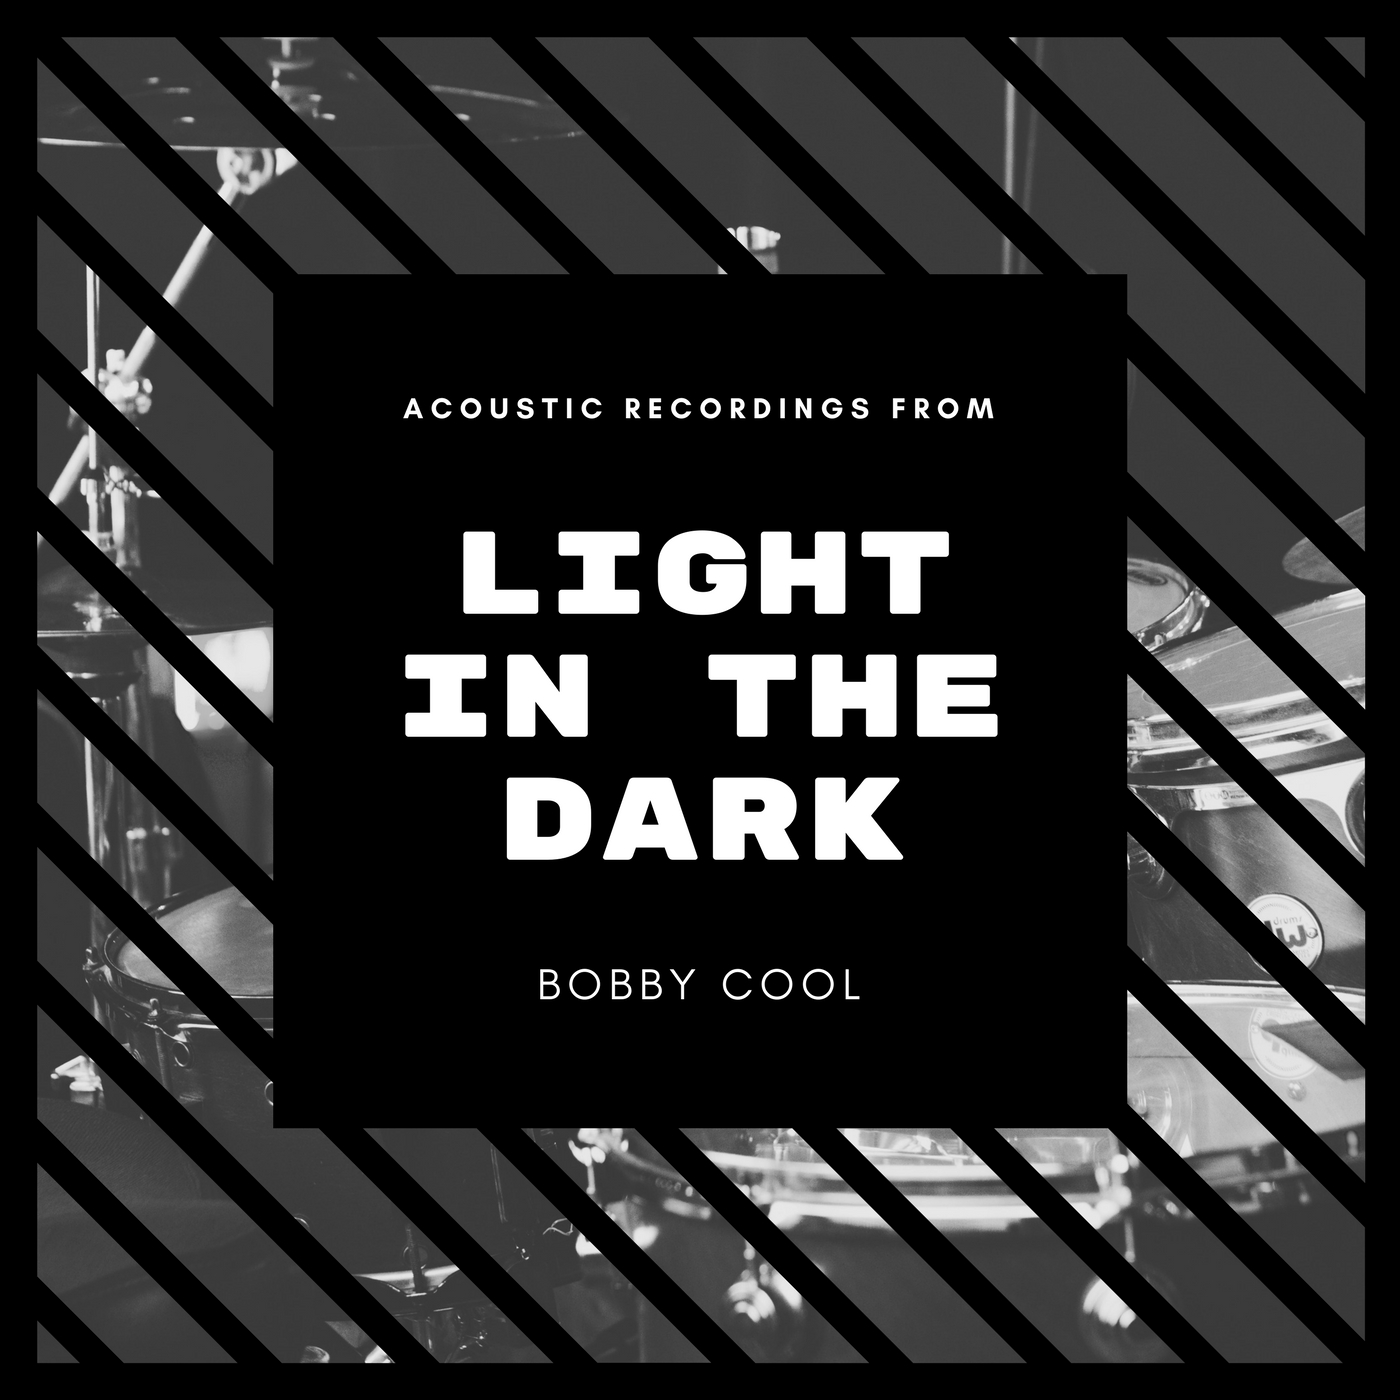 LIGHT IN THE DARK (Acoustic).jpg